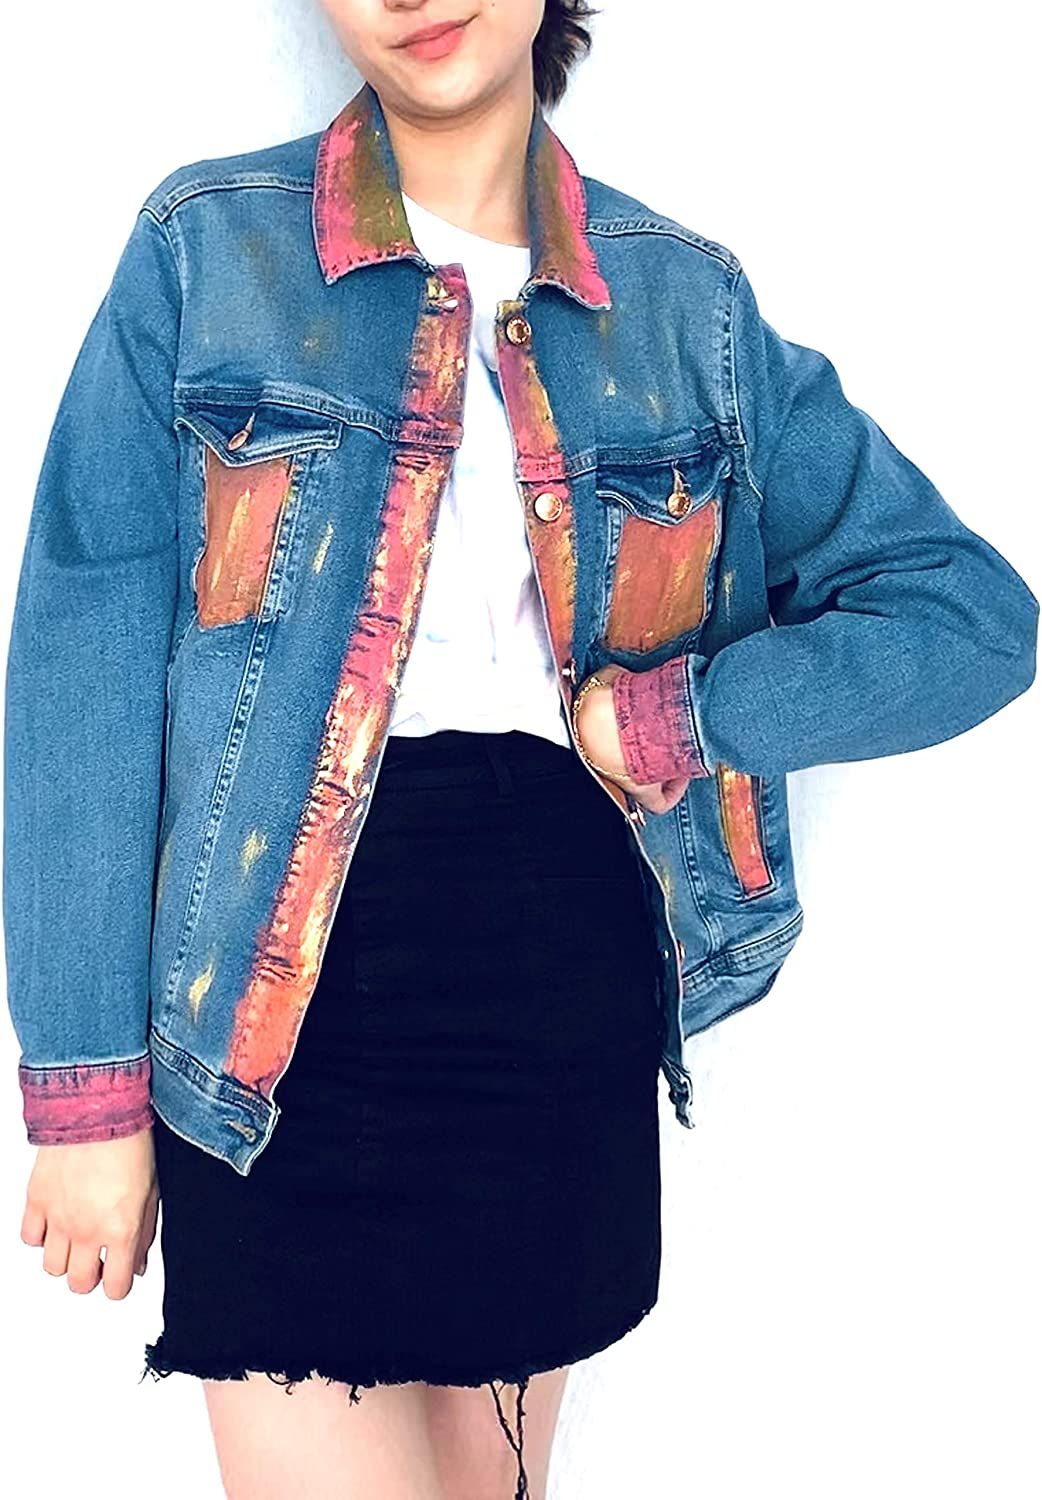 Women's Hand Painted Denim Jeans Jacket - Limited Edition, Pink/Gold Abstract Design